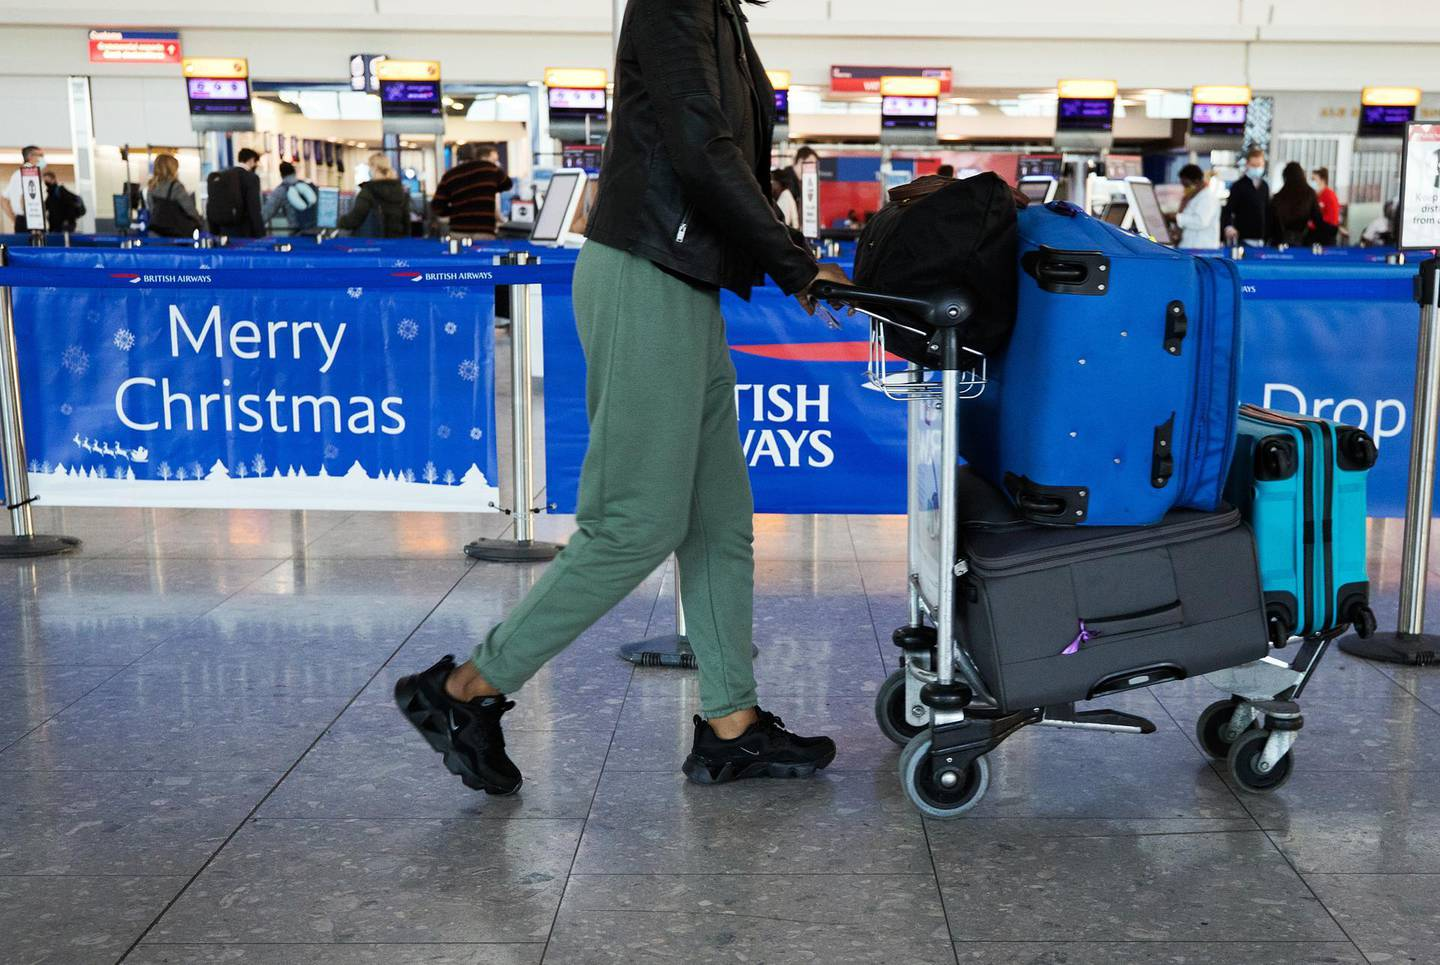 A passenger passes a 'Merry Christmas' sign in the check-in area in at London Heathrow Airport Ltd. in London, U.K., on Saturday, Dec. 19, 2020. The pandemic has put a third of all tourism jobs at risk, and airlines around the world have said they need as much as $200 billion in bailouts. Photographer: Chris Ratcliffe/Bloomberg